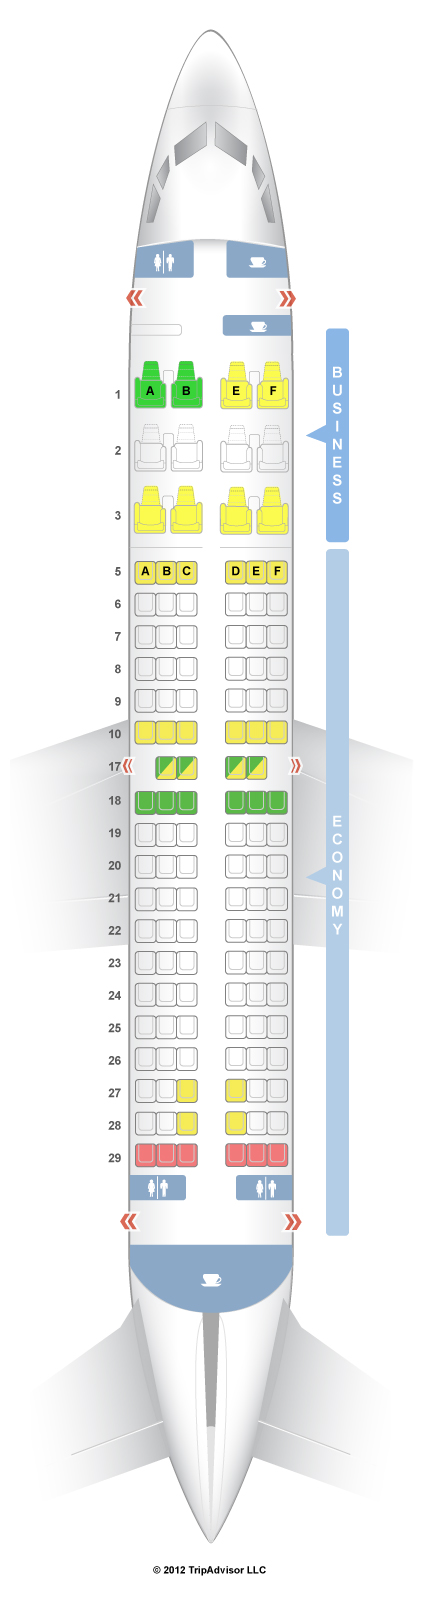 Boeing 737 800 Seating Chart Copa Airlines Awesome Home